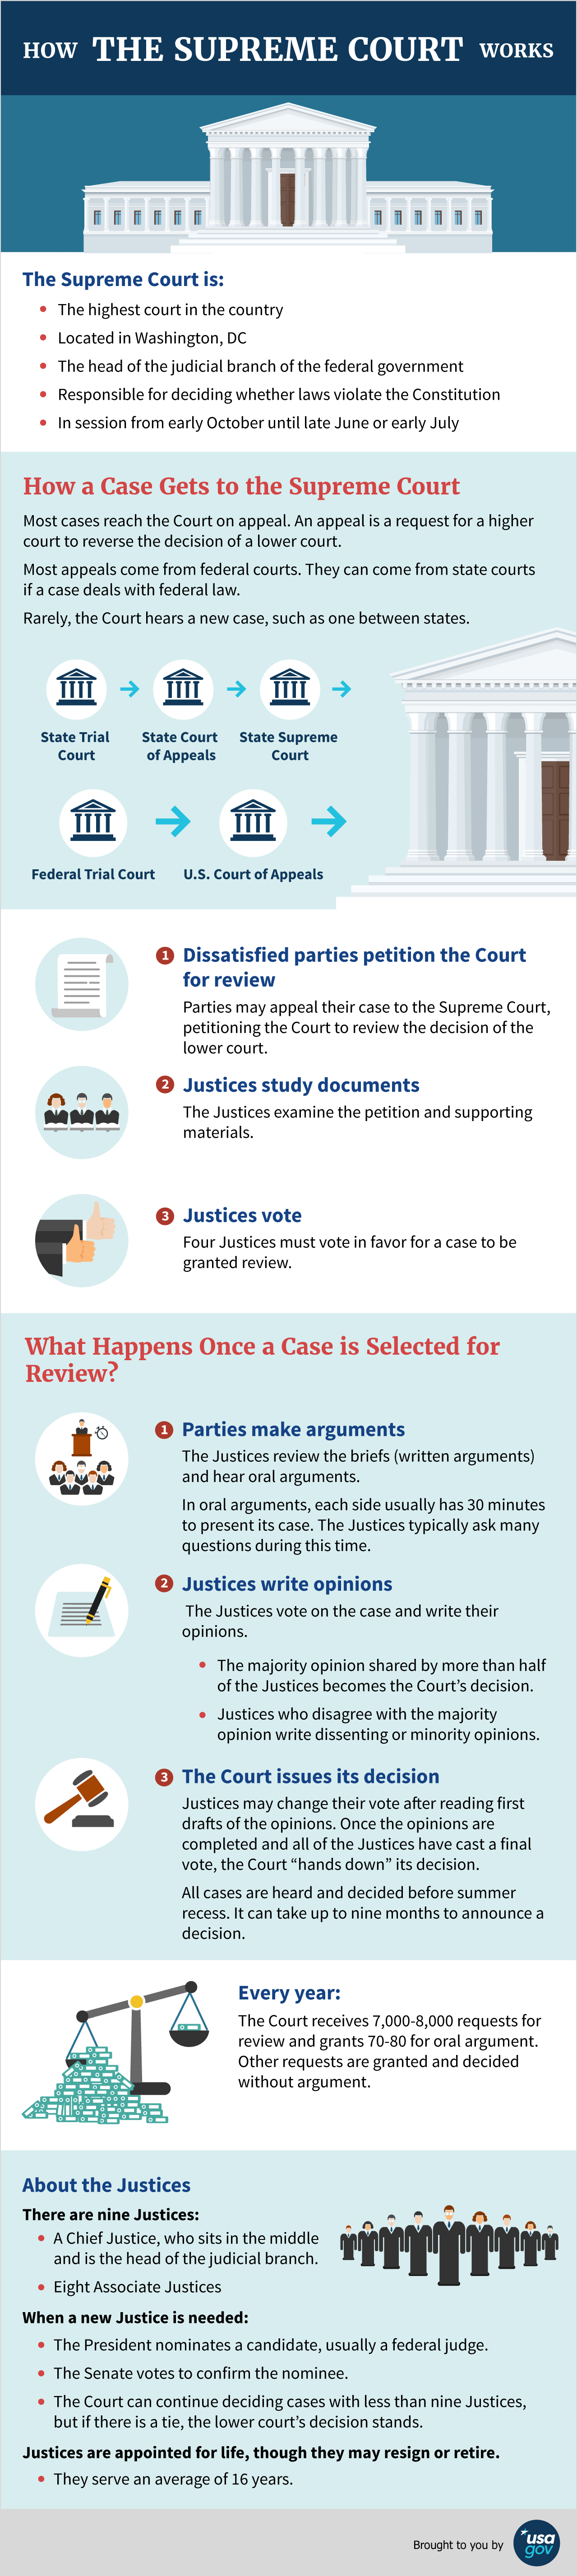 How the Supreme Court Works infographic. See description below.